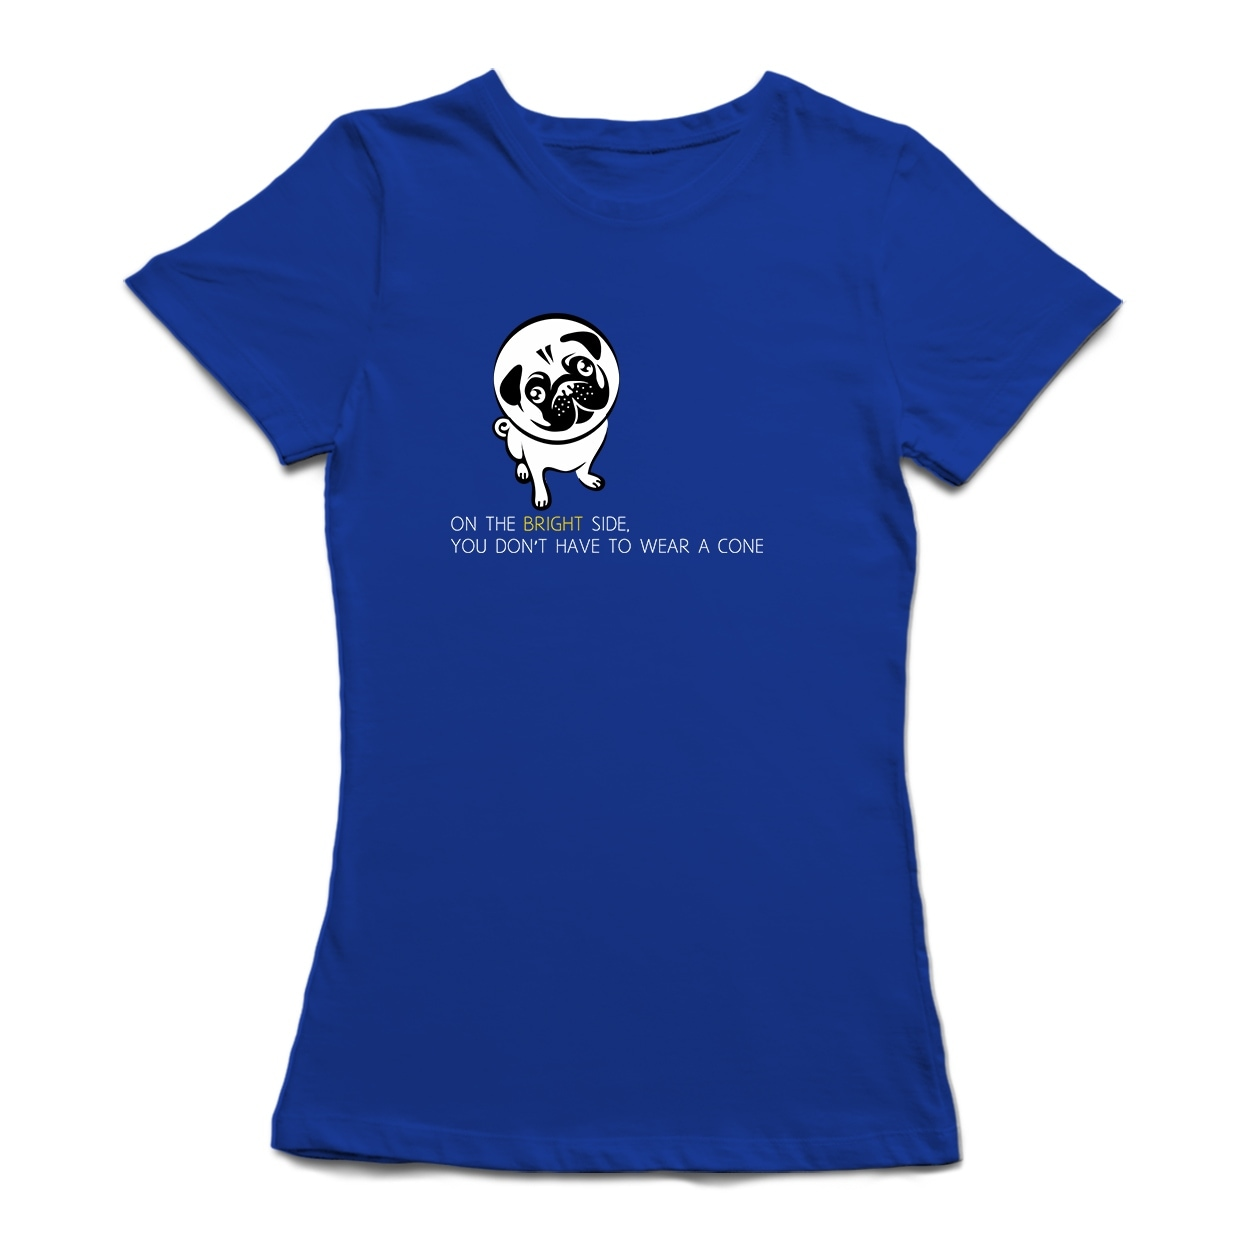 Shop On The Bright Side You Don't Have To Wear A Cone Funny Pug Quote  Women's T-shirt - On Sale - Free Shipping On Orders Over $45 -  Overstock.com - ...